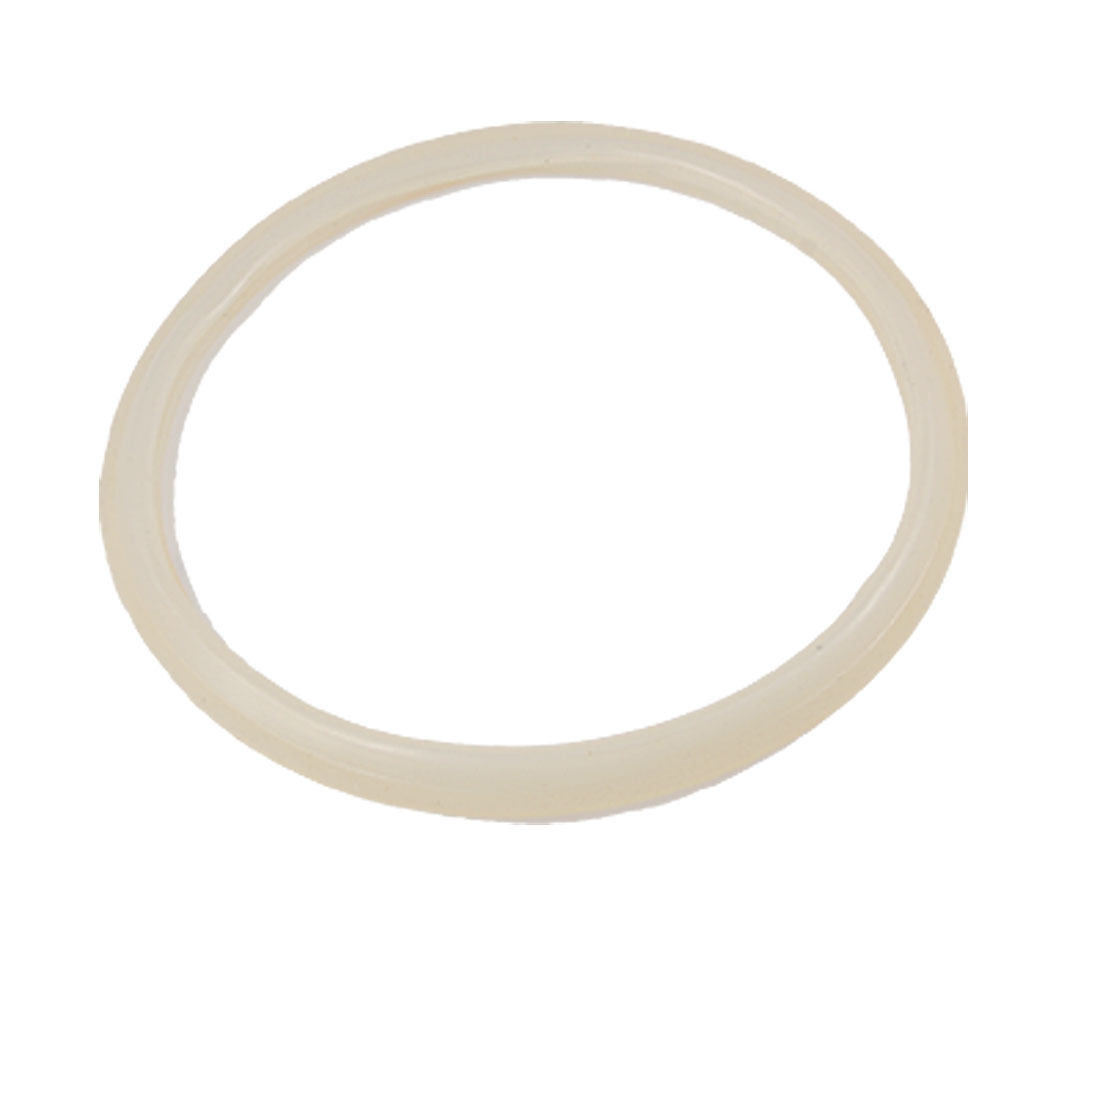 "Home Cookers Rubber Gasket Sealing Ring 7"" Inside Dia"